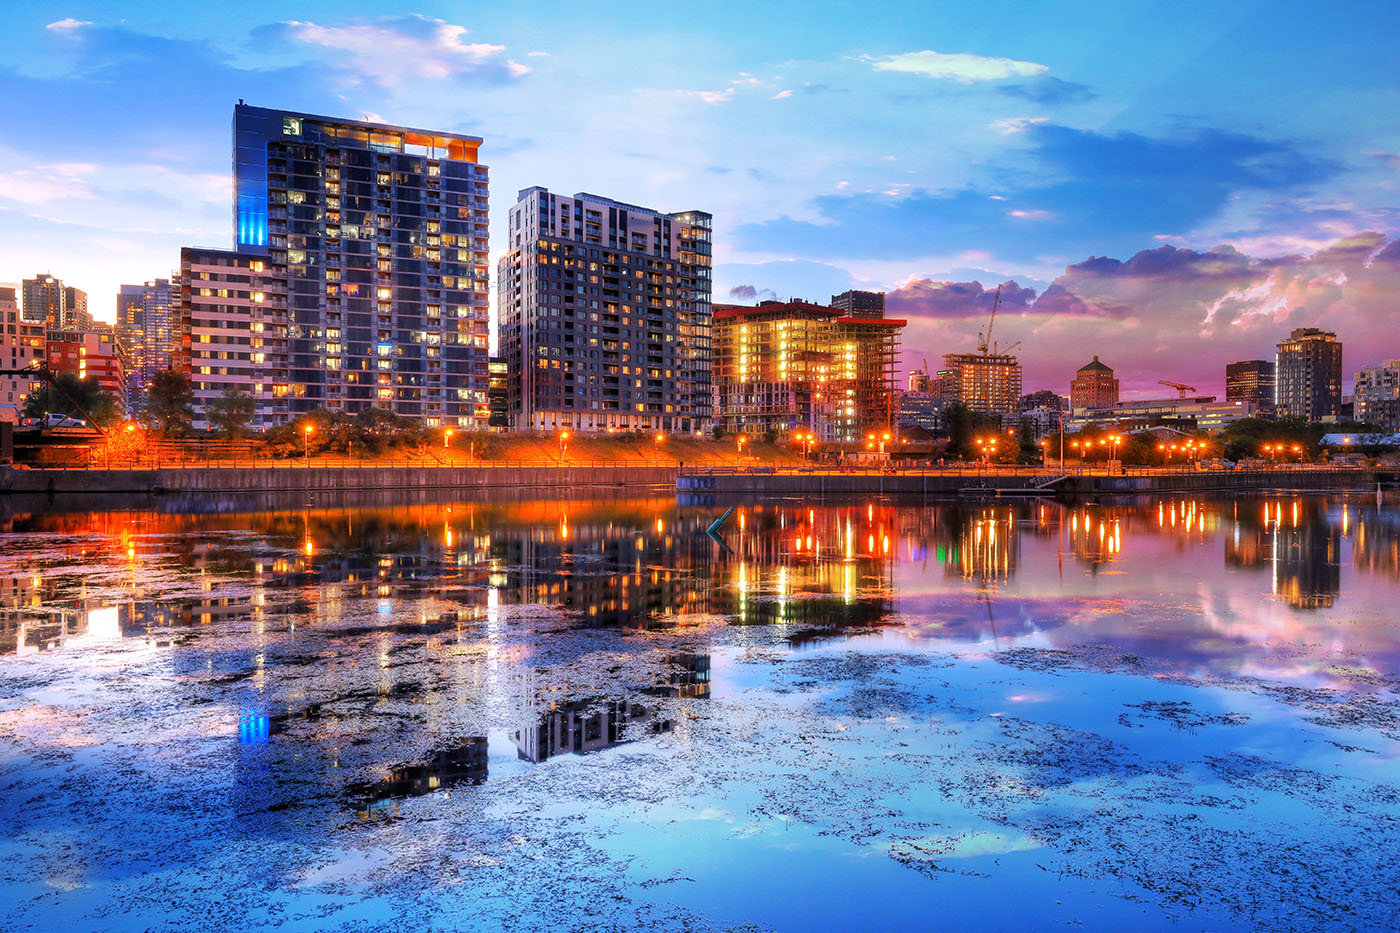 2020 Downtown Montreal City Water Reflection at Sunset Stock Image